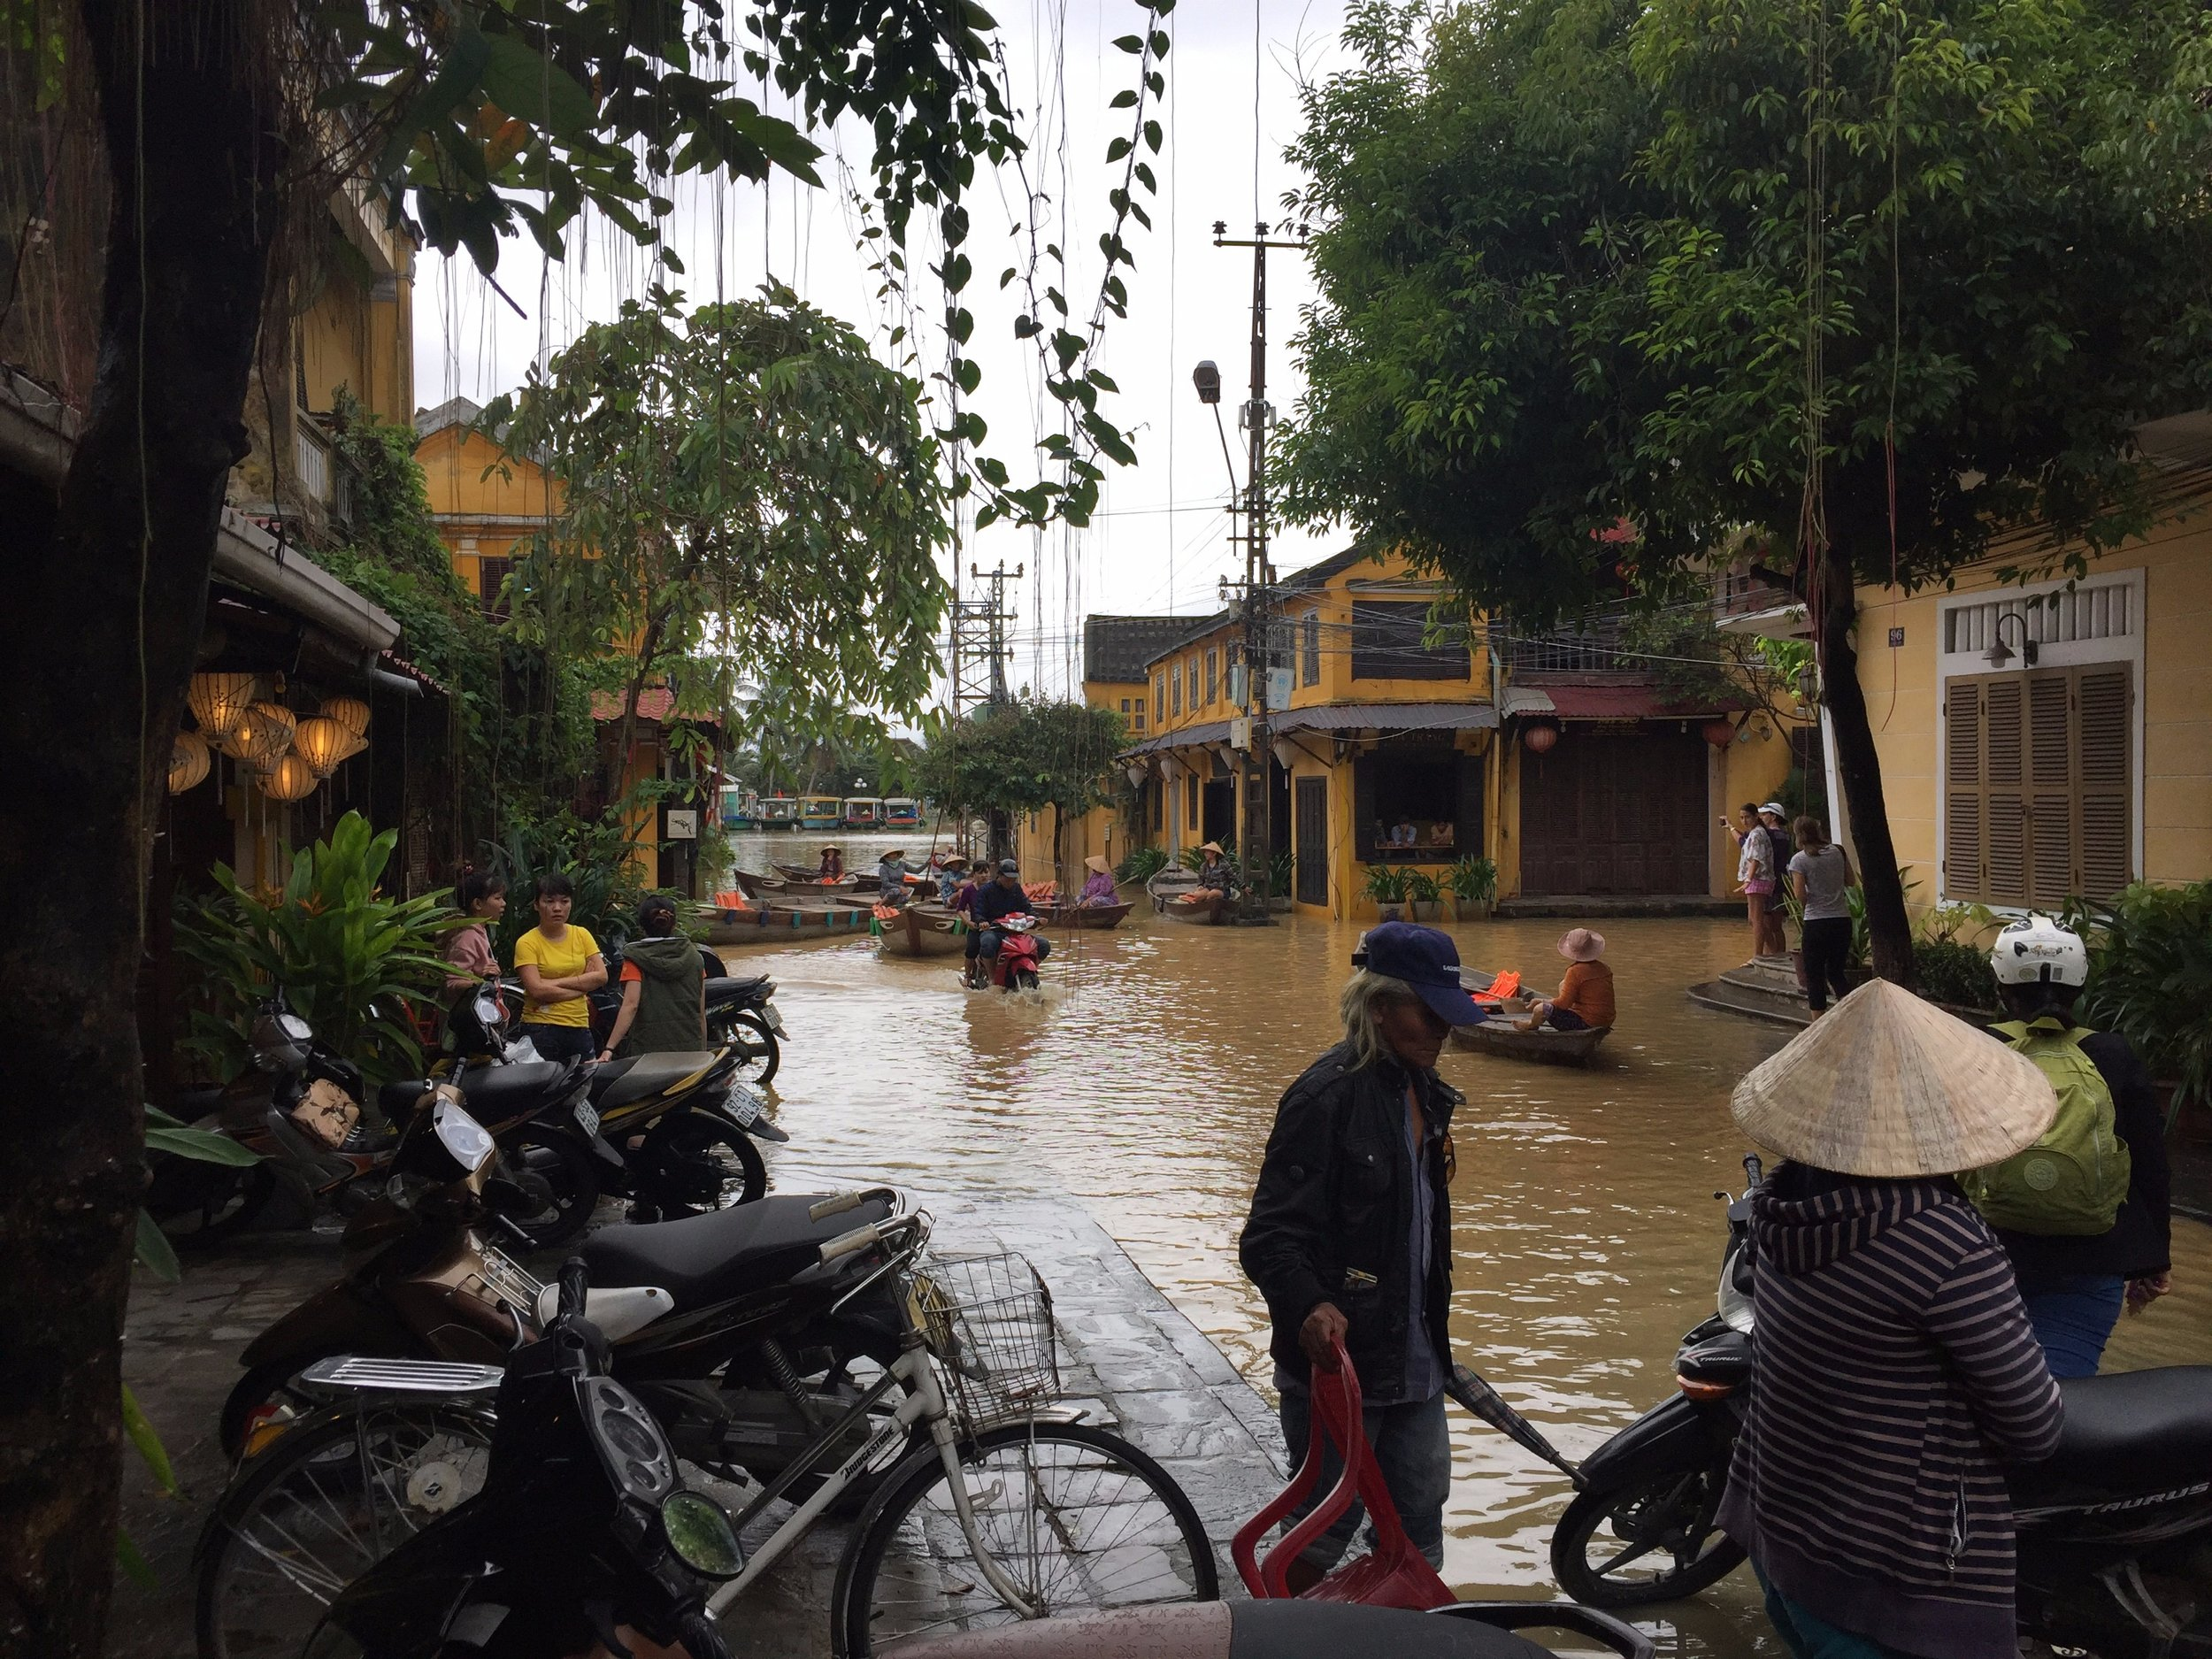 Leave it to enterprising locals to offer tourists boat rides down city streets immediately when it floods.